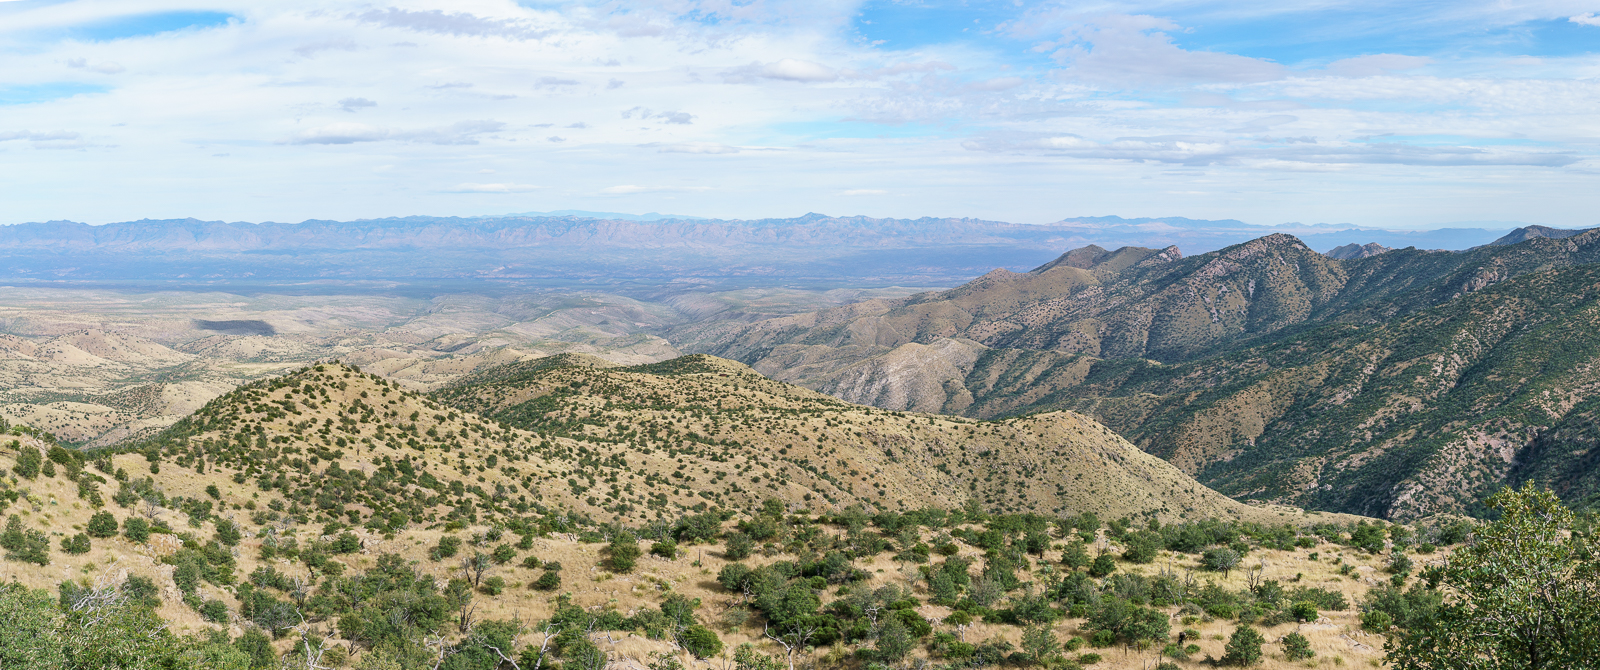 Looking down the mountain into the San Pedro River Valley from Lombar Hill - Alder Canyon and the ridge between Alder and Edgar Canyons are on the right - if you zoom in you can see Black Hills Mine Road and the road to Ventana Windmill descending into Alder Canyon. October 2016.